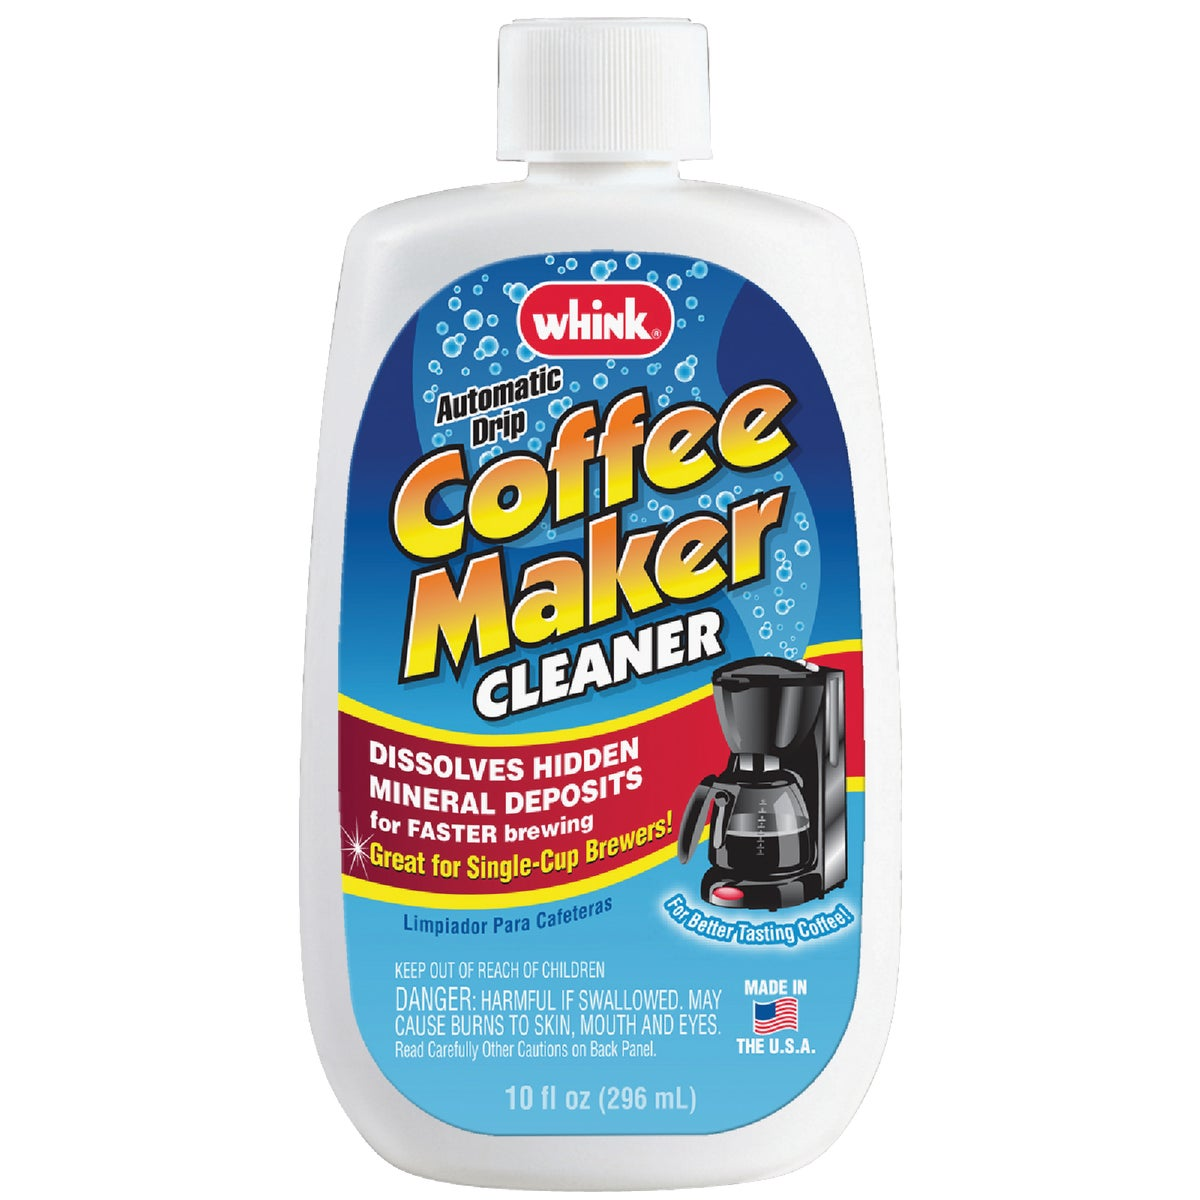 Automatic CoffeeMaker Cleaner, 30281